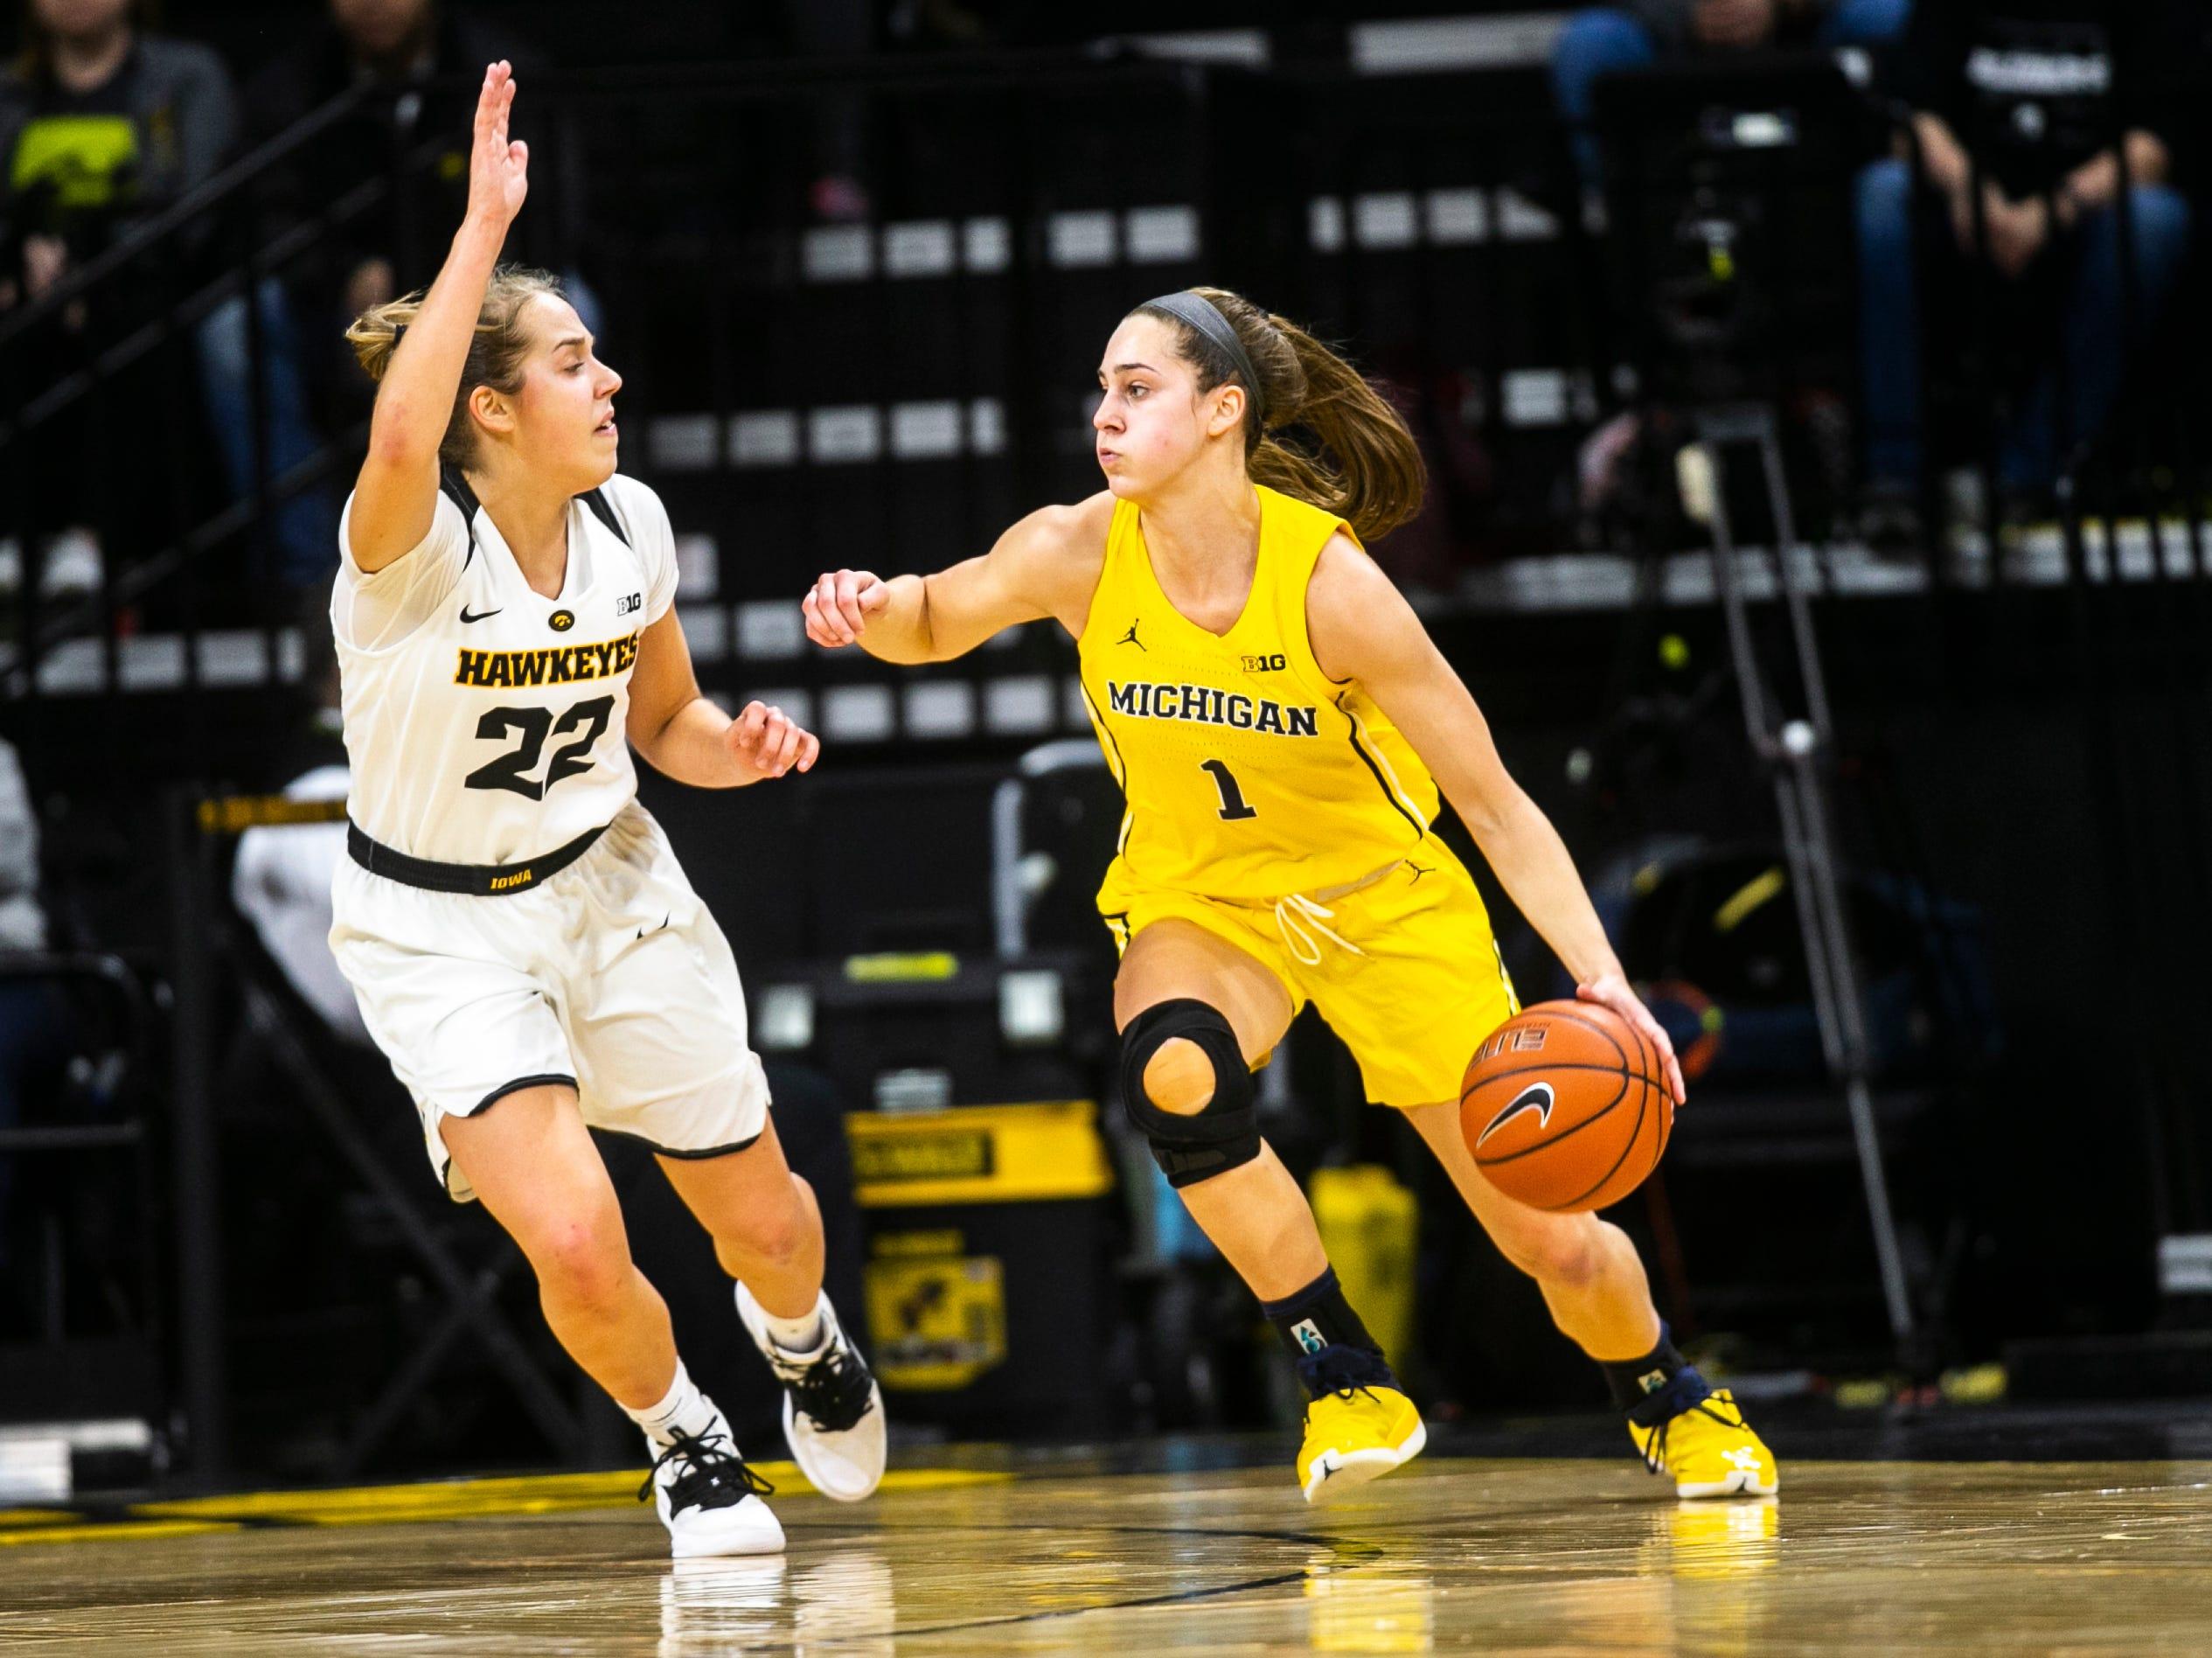 Iowa guard Kathleen Doyle (22) defends Michigan guard Amy Dilk (1) during a NCAA Big Ten Conference women's basketball game on Thursday, Jan. 17, 2019, at Carver-Hawkeye Arena in Iowa City, Iowa.